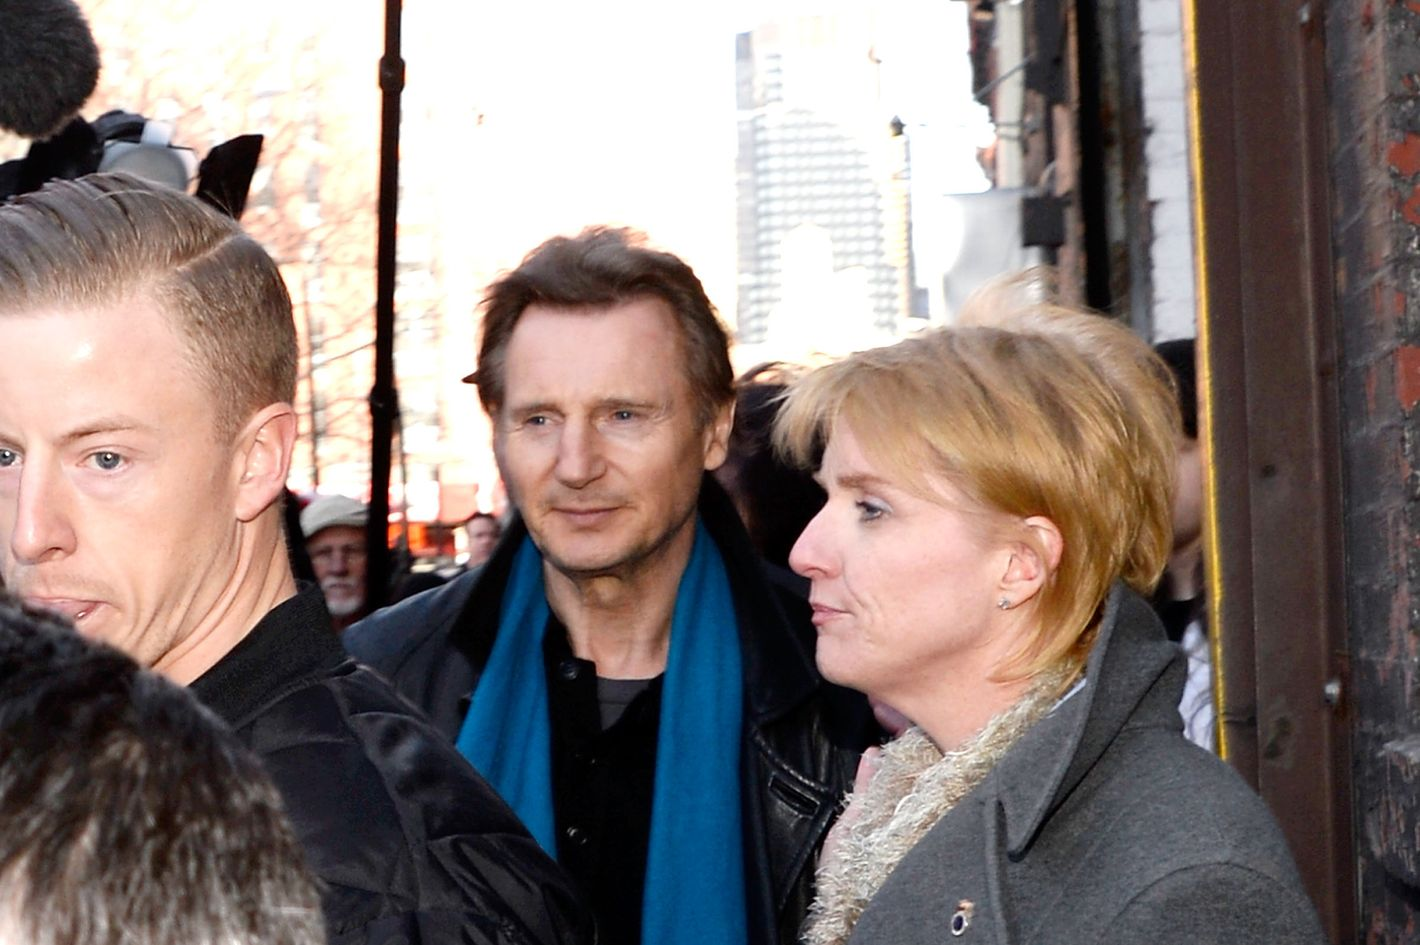 NEW YORK, NY - MARCH 09:  Actor Liam Neeson (C) visits Clinton Park Horse Stables on March 9, 2014 in New York City.  (Photo by Ben Gabbe/Getty Images)